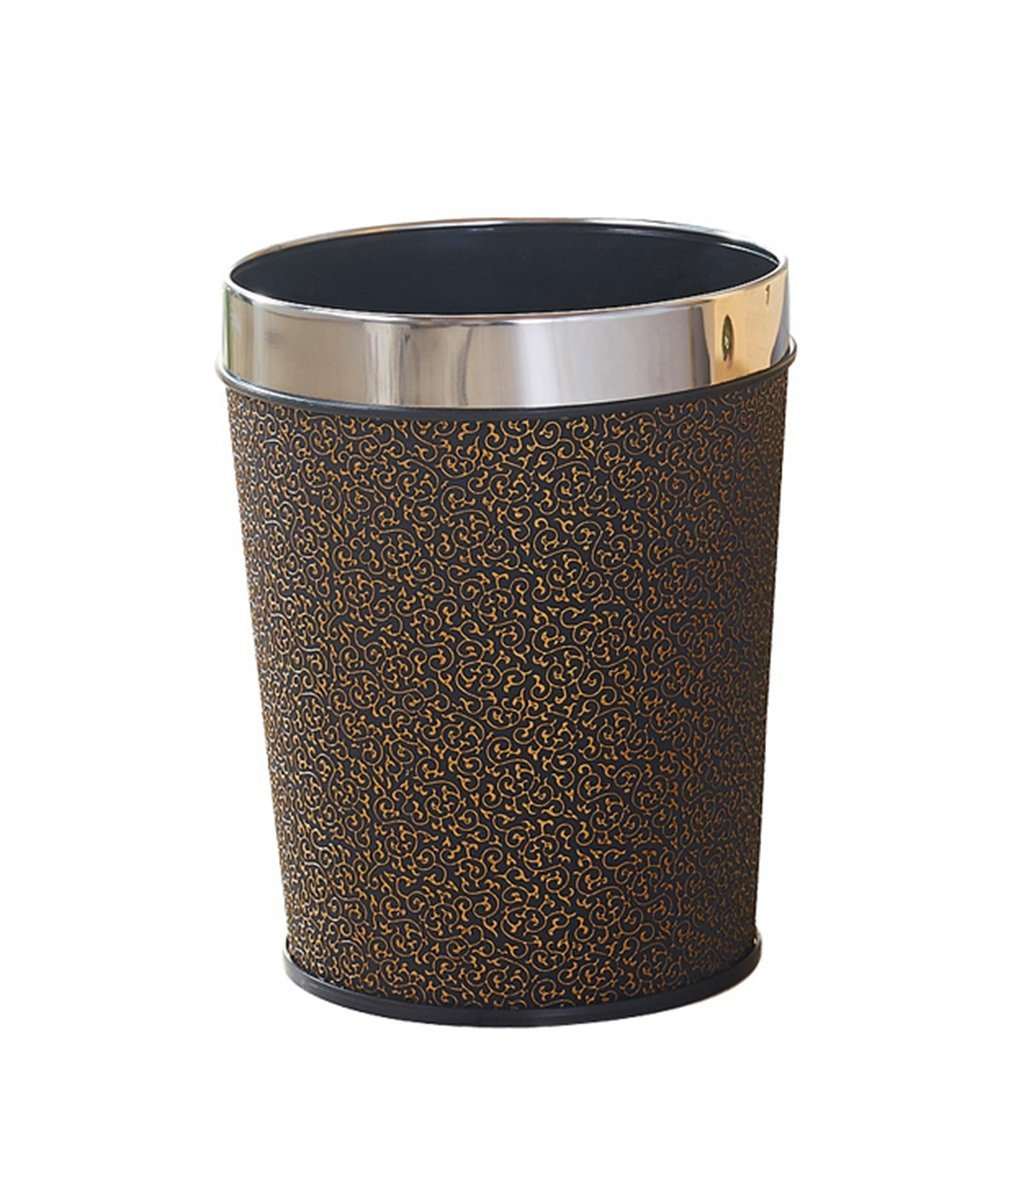 CSQ Without Cover Trash Can, Stylish Creative Trash Can Living Room Hotel Household Kitchen Bedroom Bathroom Plastic Trash Can 6-12L (Color : C, Size : 12L)